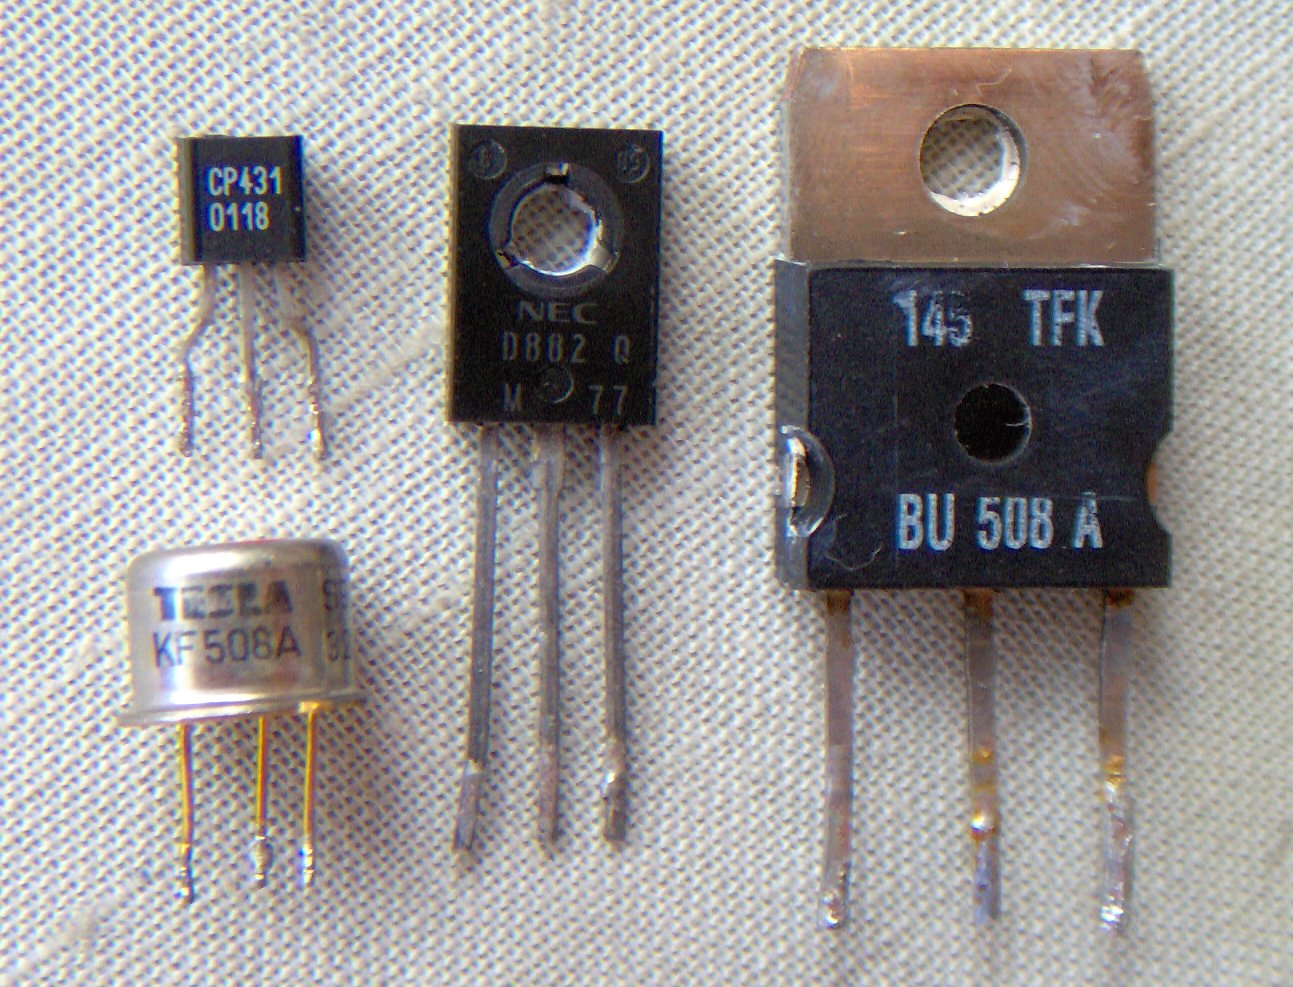 http://upload.wikimedia.org/wikipedia/commons/6/64/Electronic_component_transistors.jpg